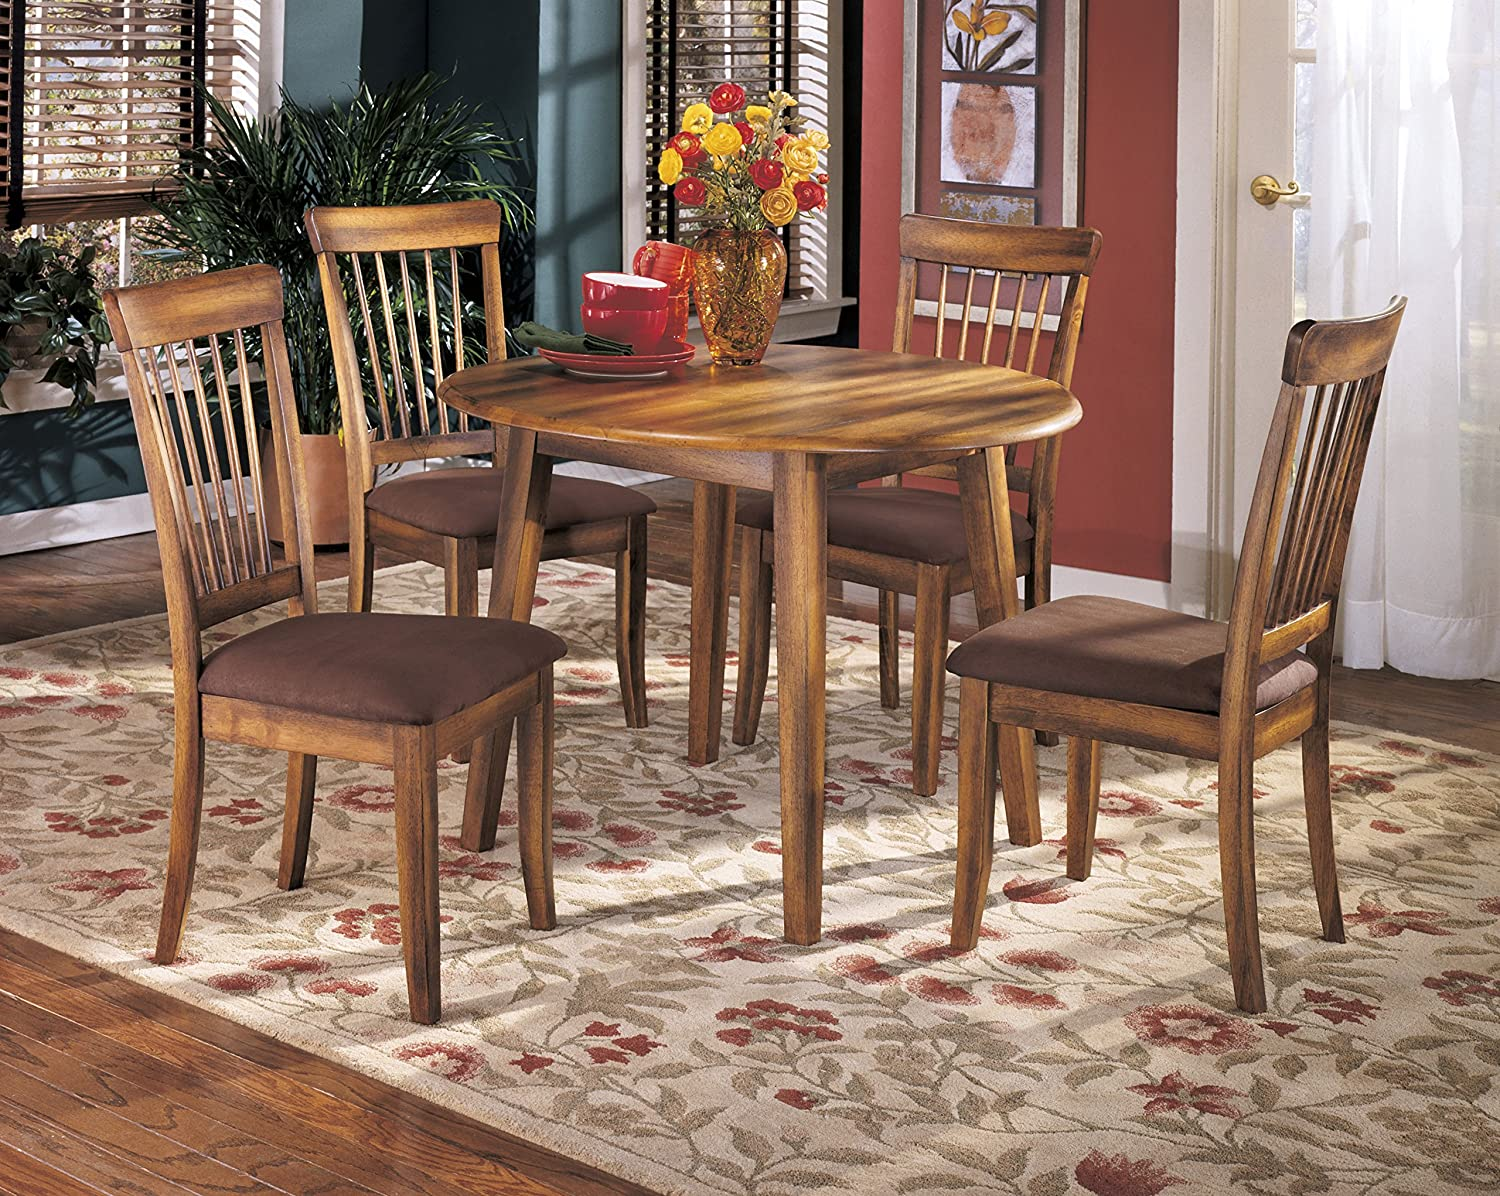 Berring Rustic Brown Dining Room Furniture Set, Round Drop Leaf Table with 4 Dining Upholstered Side Chair